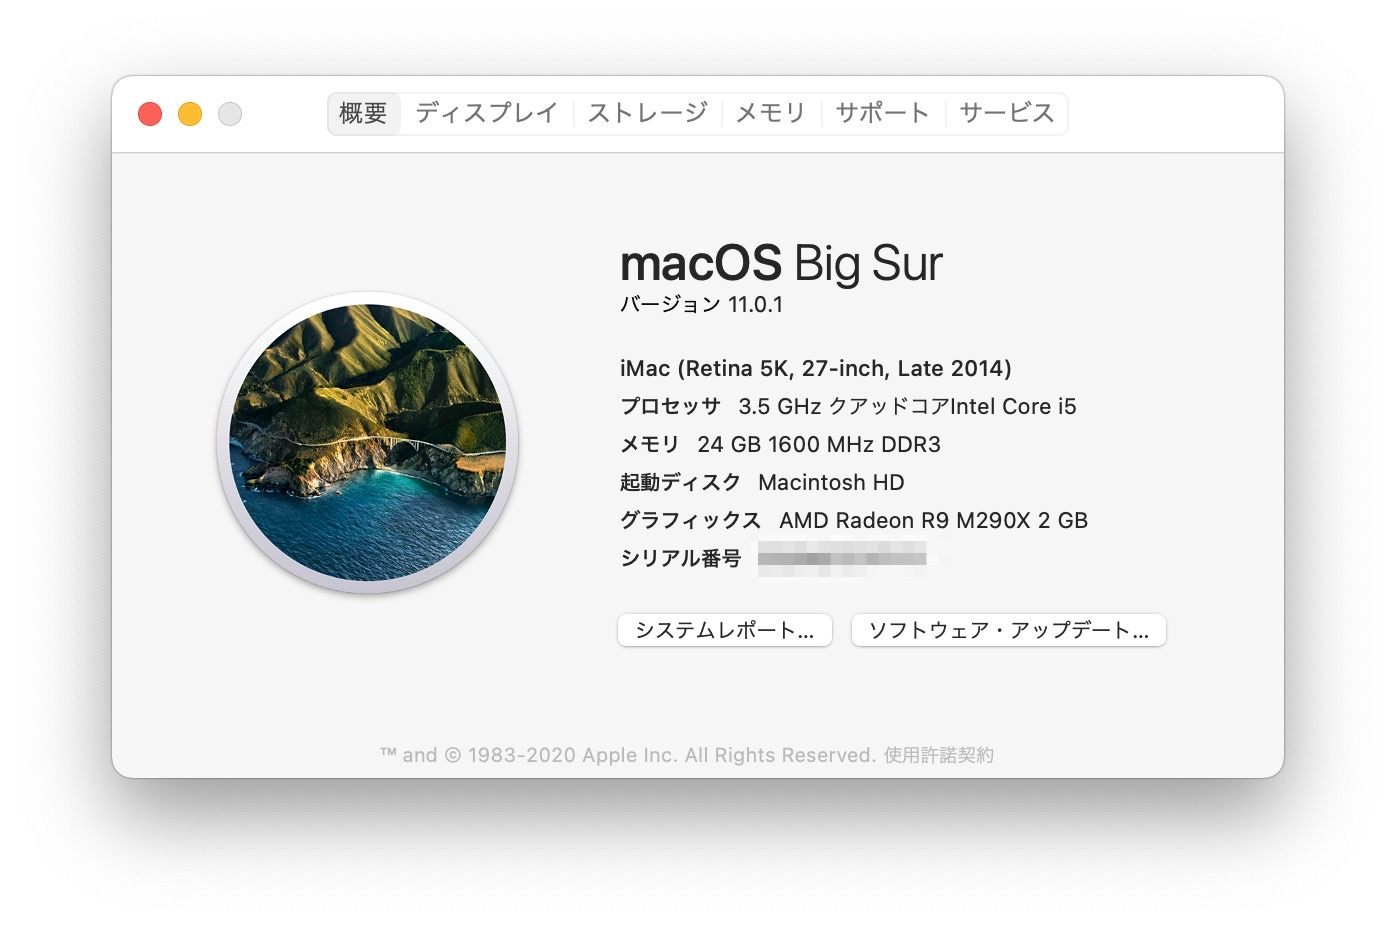 macOS Big Sir